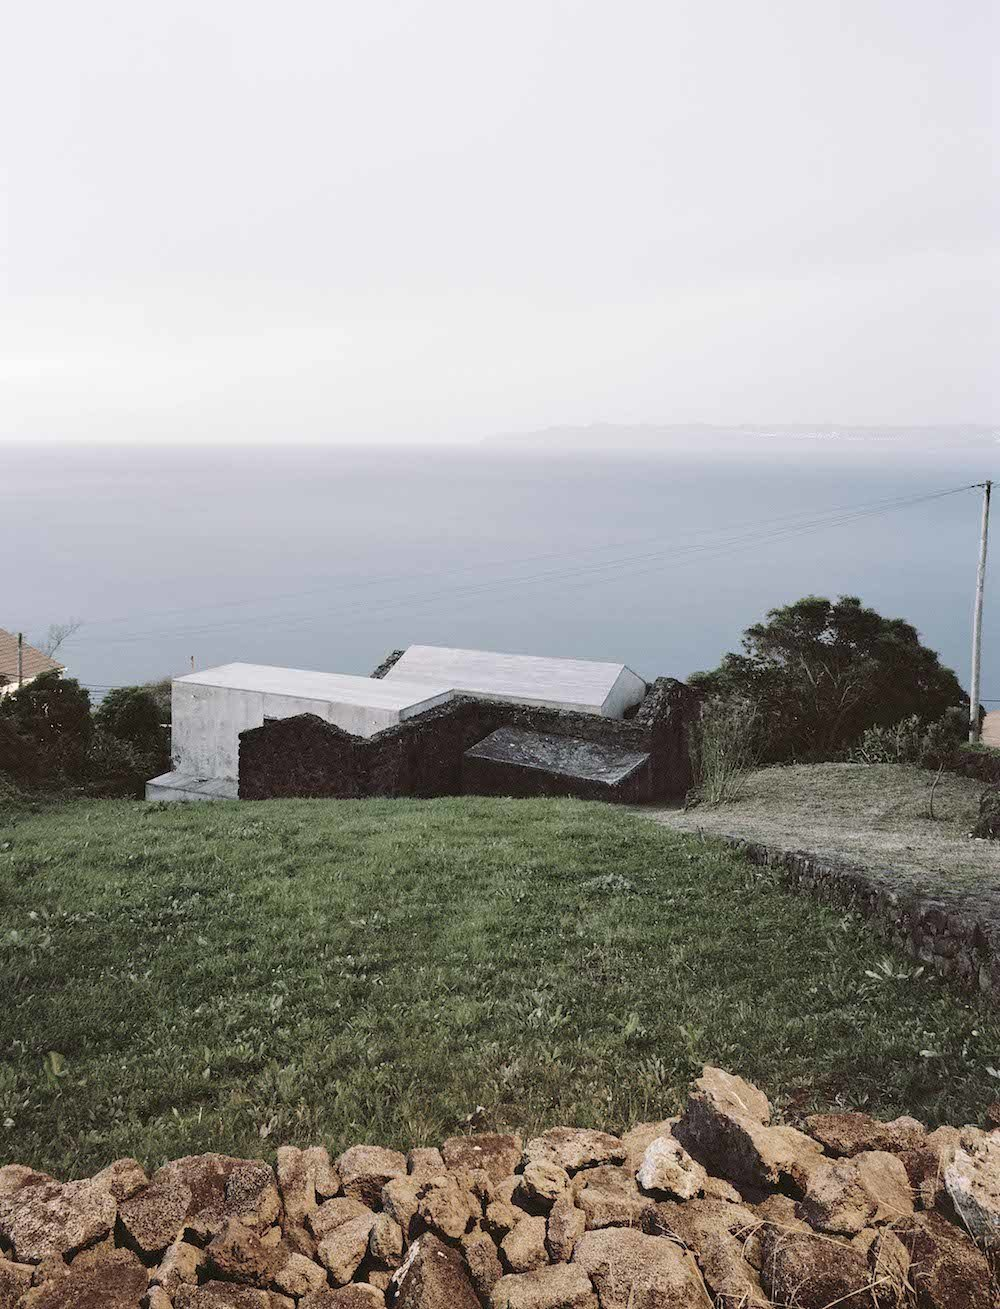 "Initially unassuming, the E/C home appears hidden from the road, perched on the sloping edge of the island and partially wrapped in the basalt walls from an 18th-century farmhouse. Architects Ines Vieira da Silva and and Miguel Vieira approached the site with a vision to create a relationship with the landscape; they designed the 2,600-square-foot holiday home to not only be a simple escape, but also to frame the weathered coast and reflect its past. ""Both paths to the house were designed with basalt stone, as if they were still a rural path,"" Vieira da Silva says. Tagged: Exterior and Concrete Siding Material.  This Modern Coastal Escape Sits Within 18th-Century Stone Walls by Patrick Sisson"